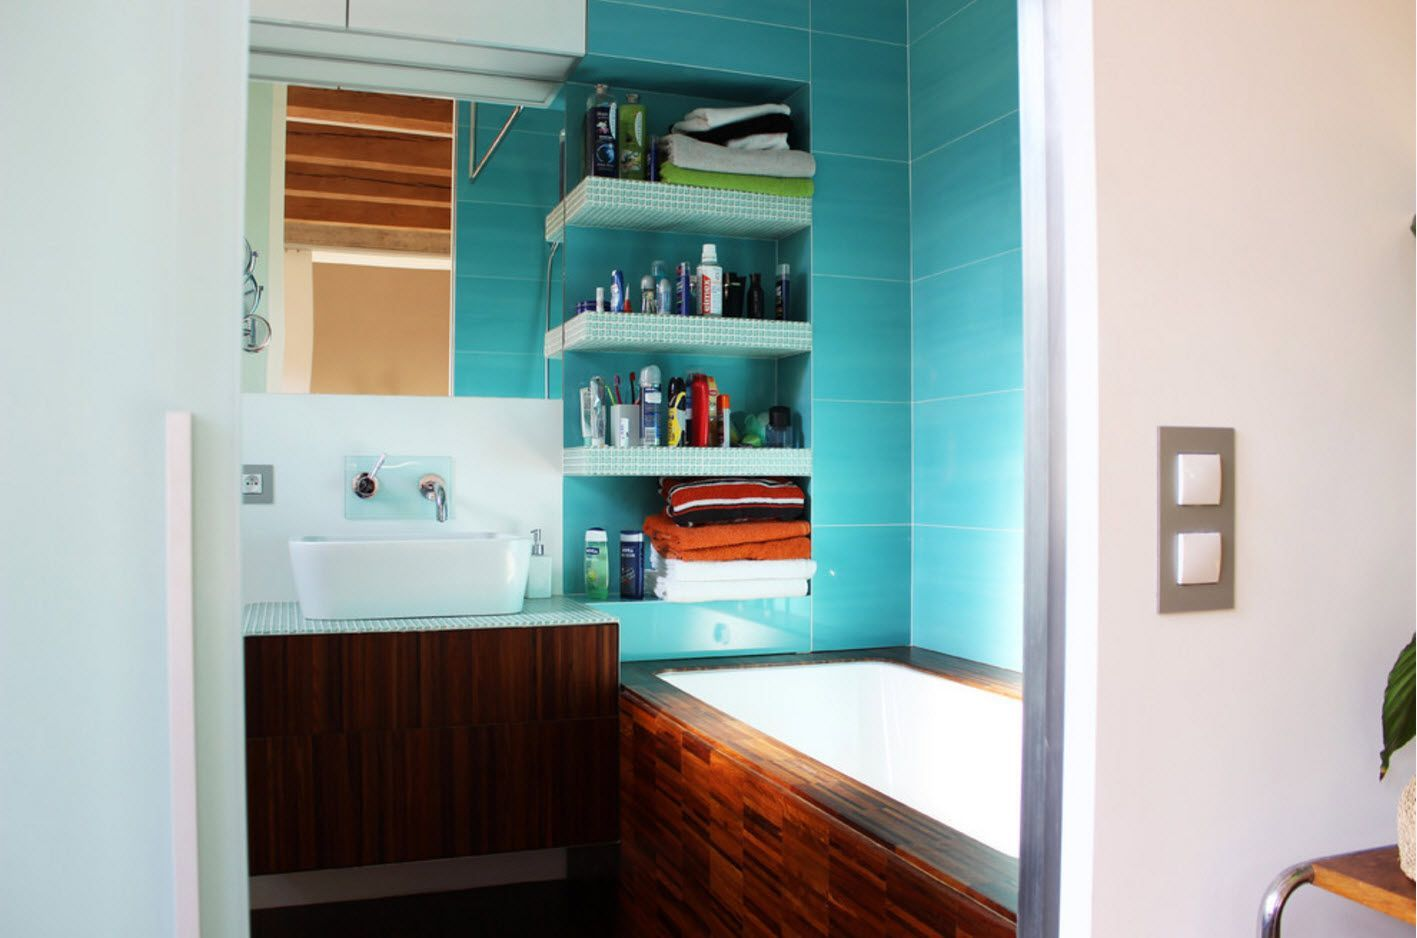 Gorgeous turquoise tile in the shower zone of the bathroom